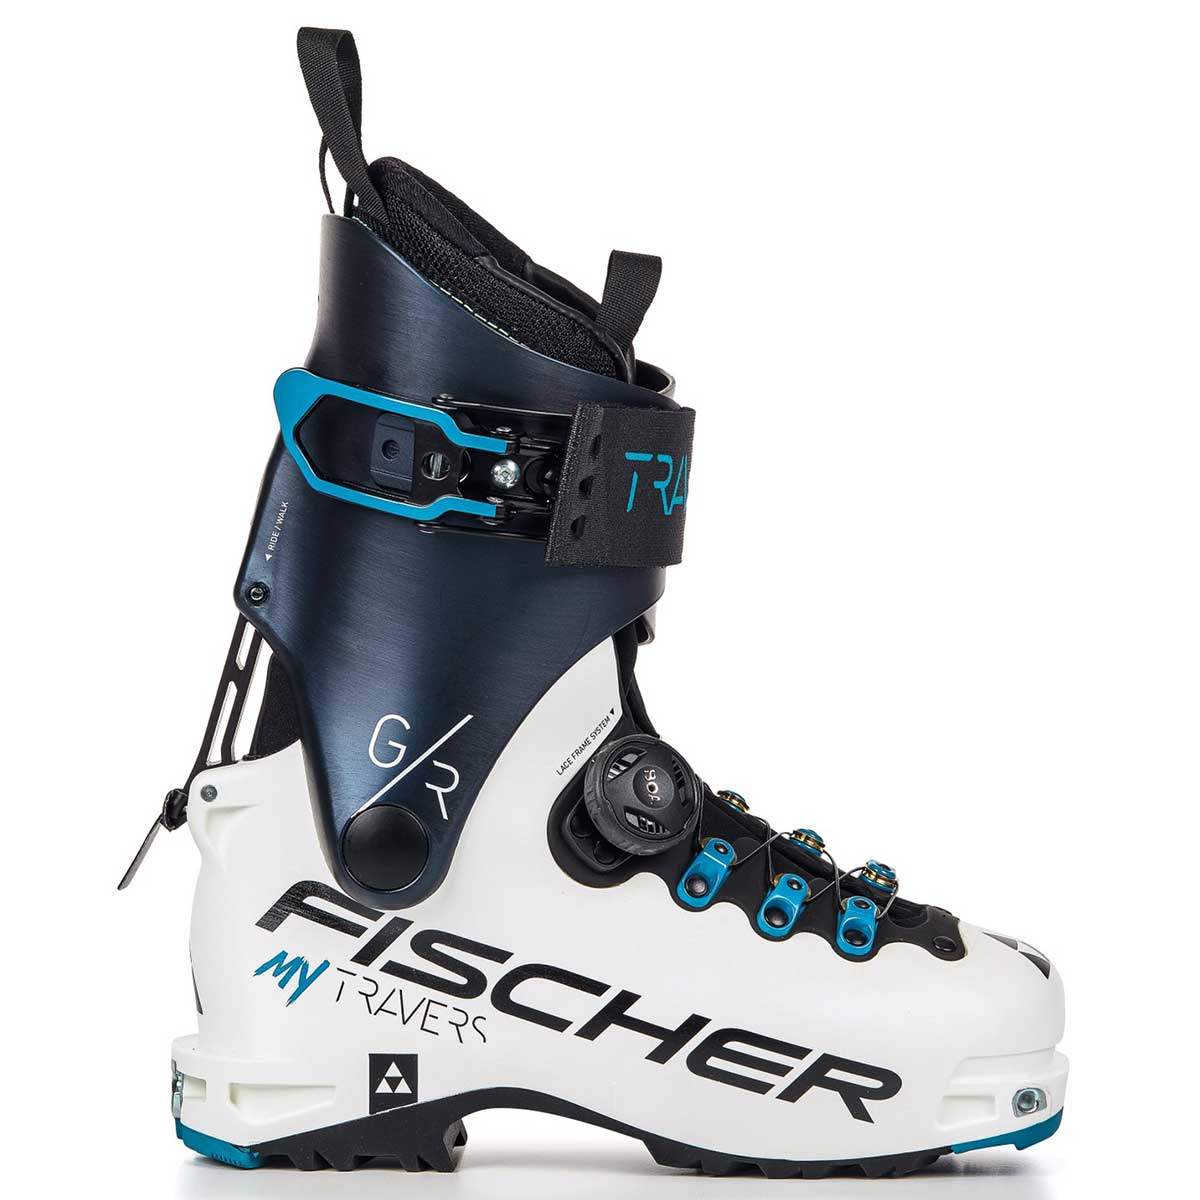 Fischer My Travers GR women's ski boot in white and blue